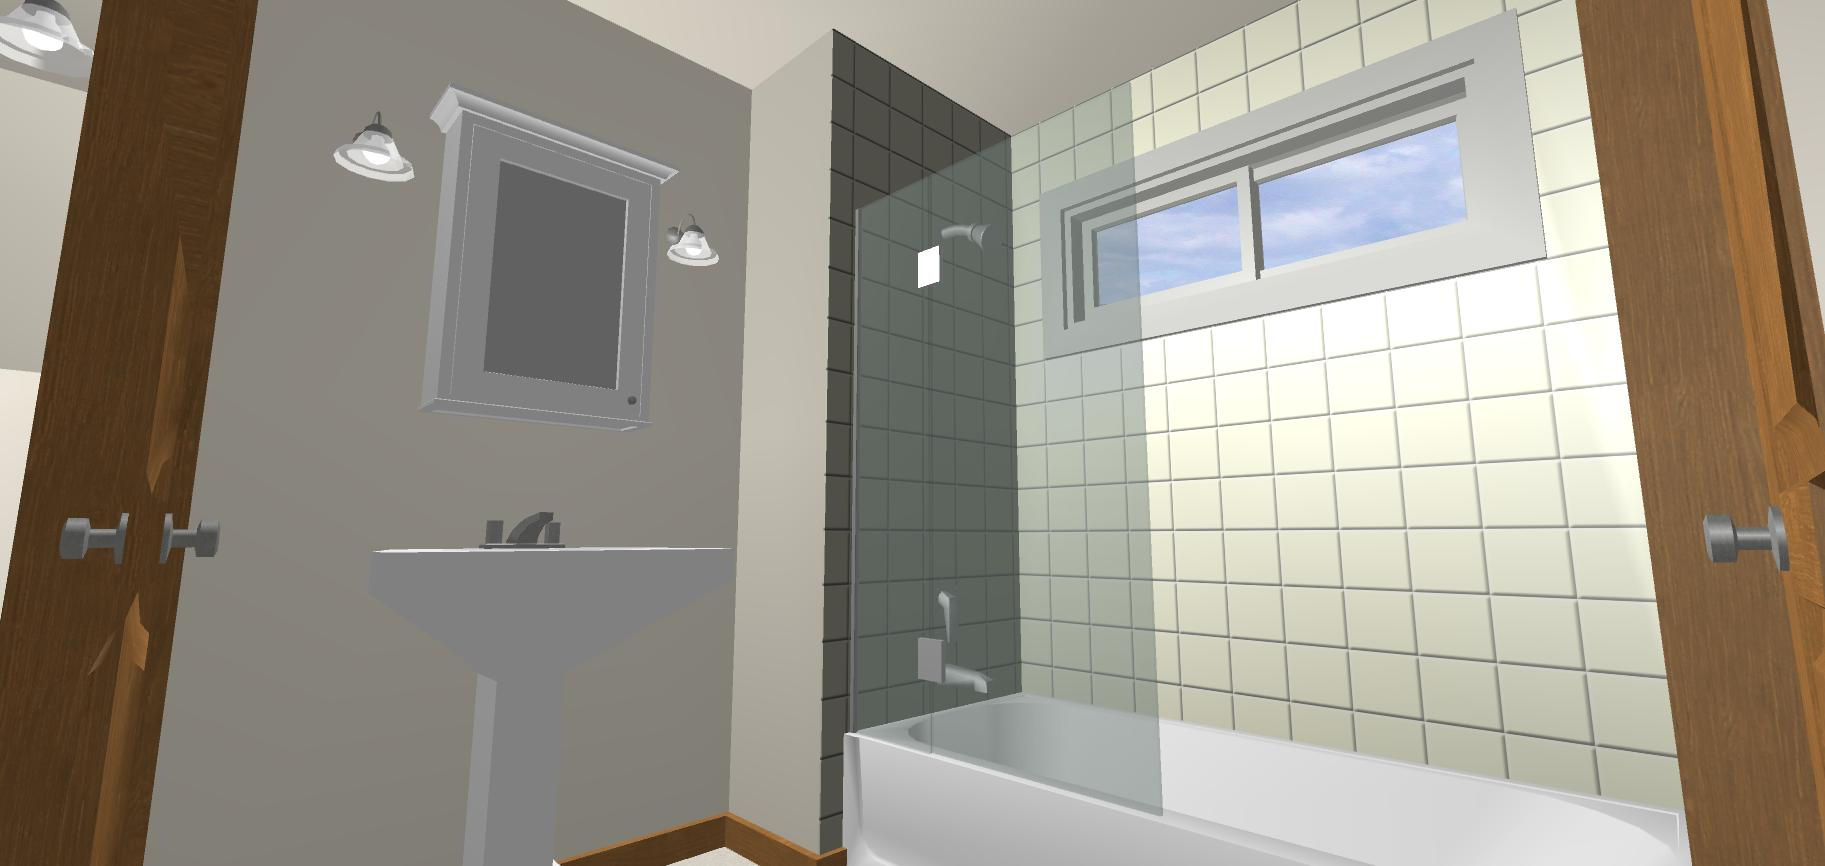 Window For Tubshower Wall Recommend Product  Windows Siding and Doors  Contractor Talk